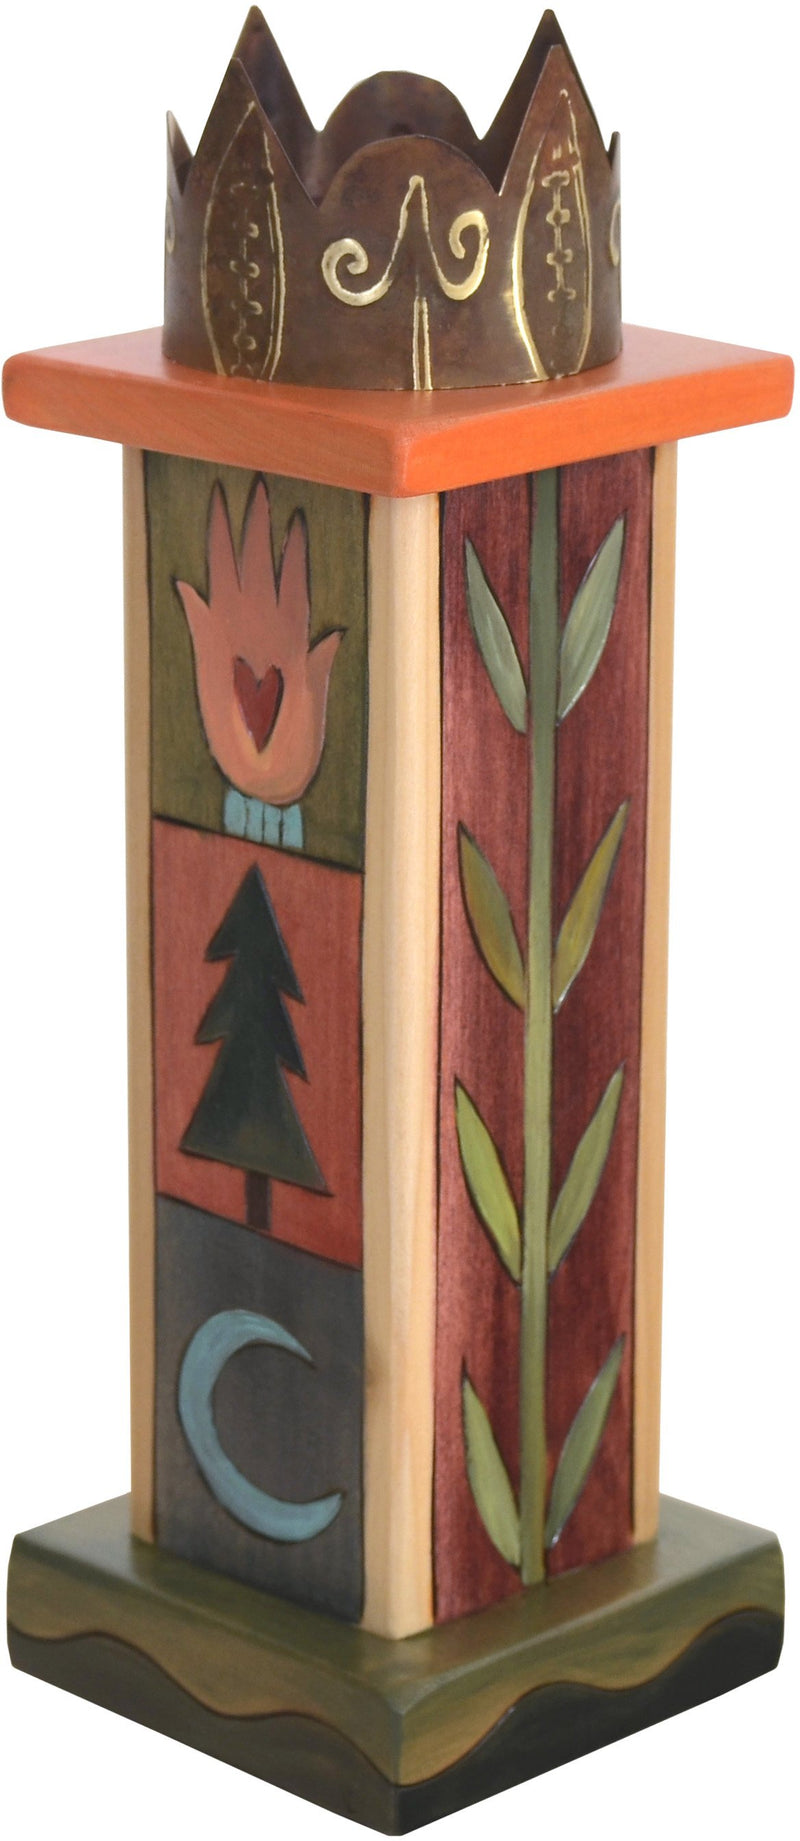 Small Pillar Candle Holder –  Lovely candle holder with colorful block icons and vine motifs